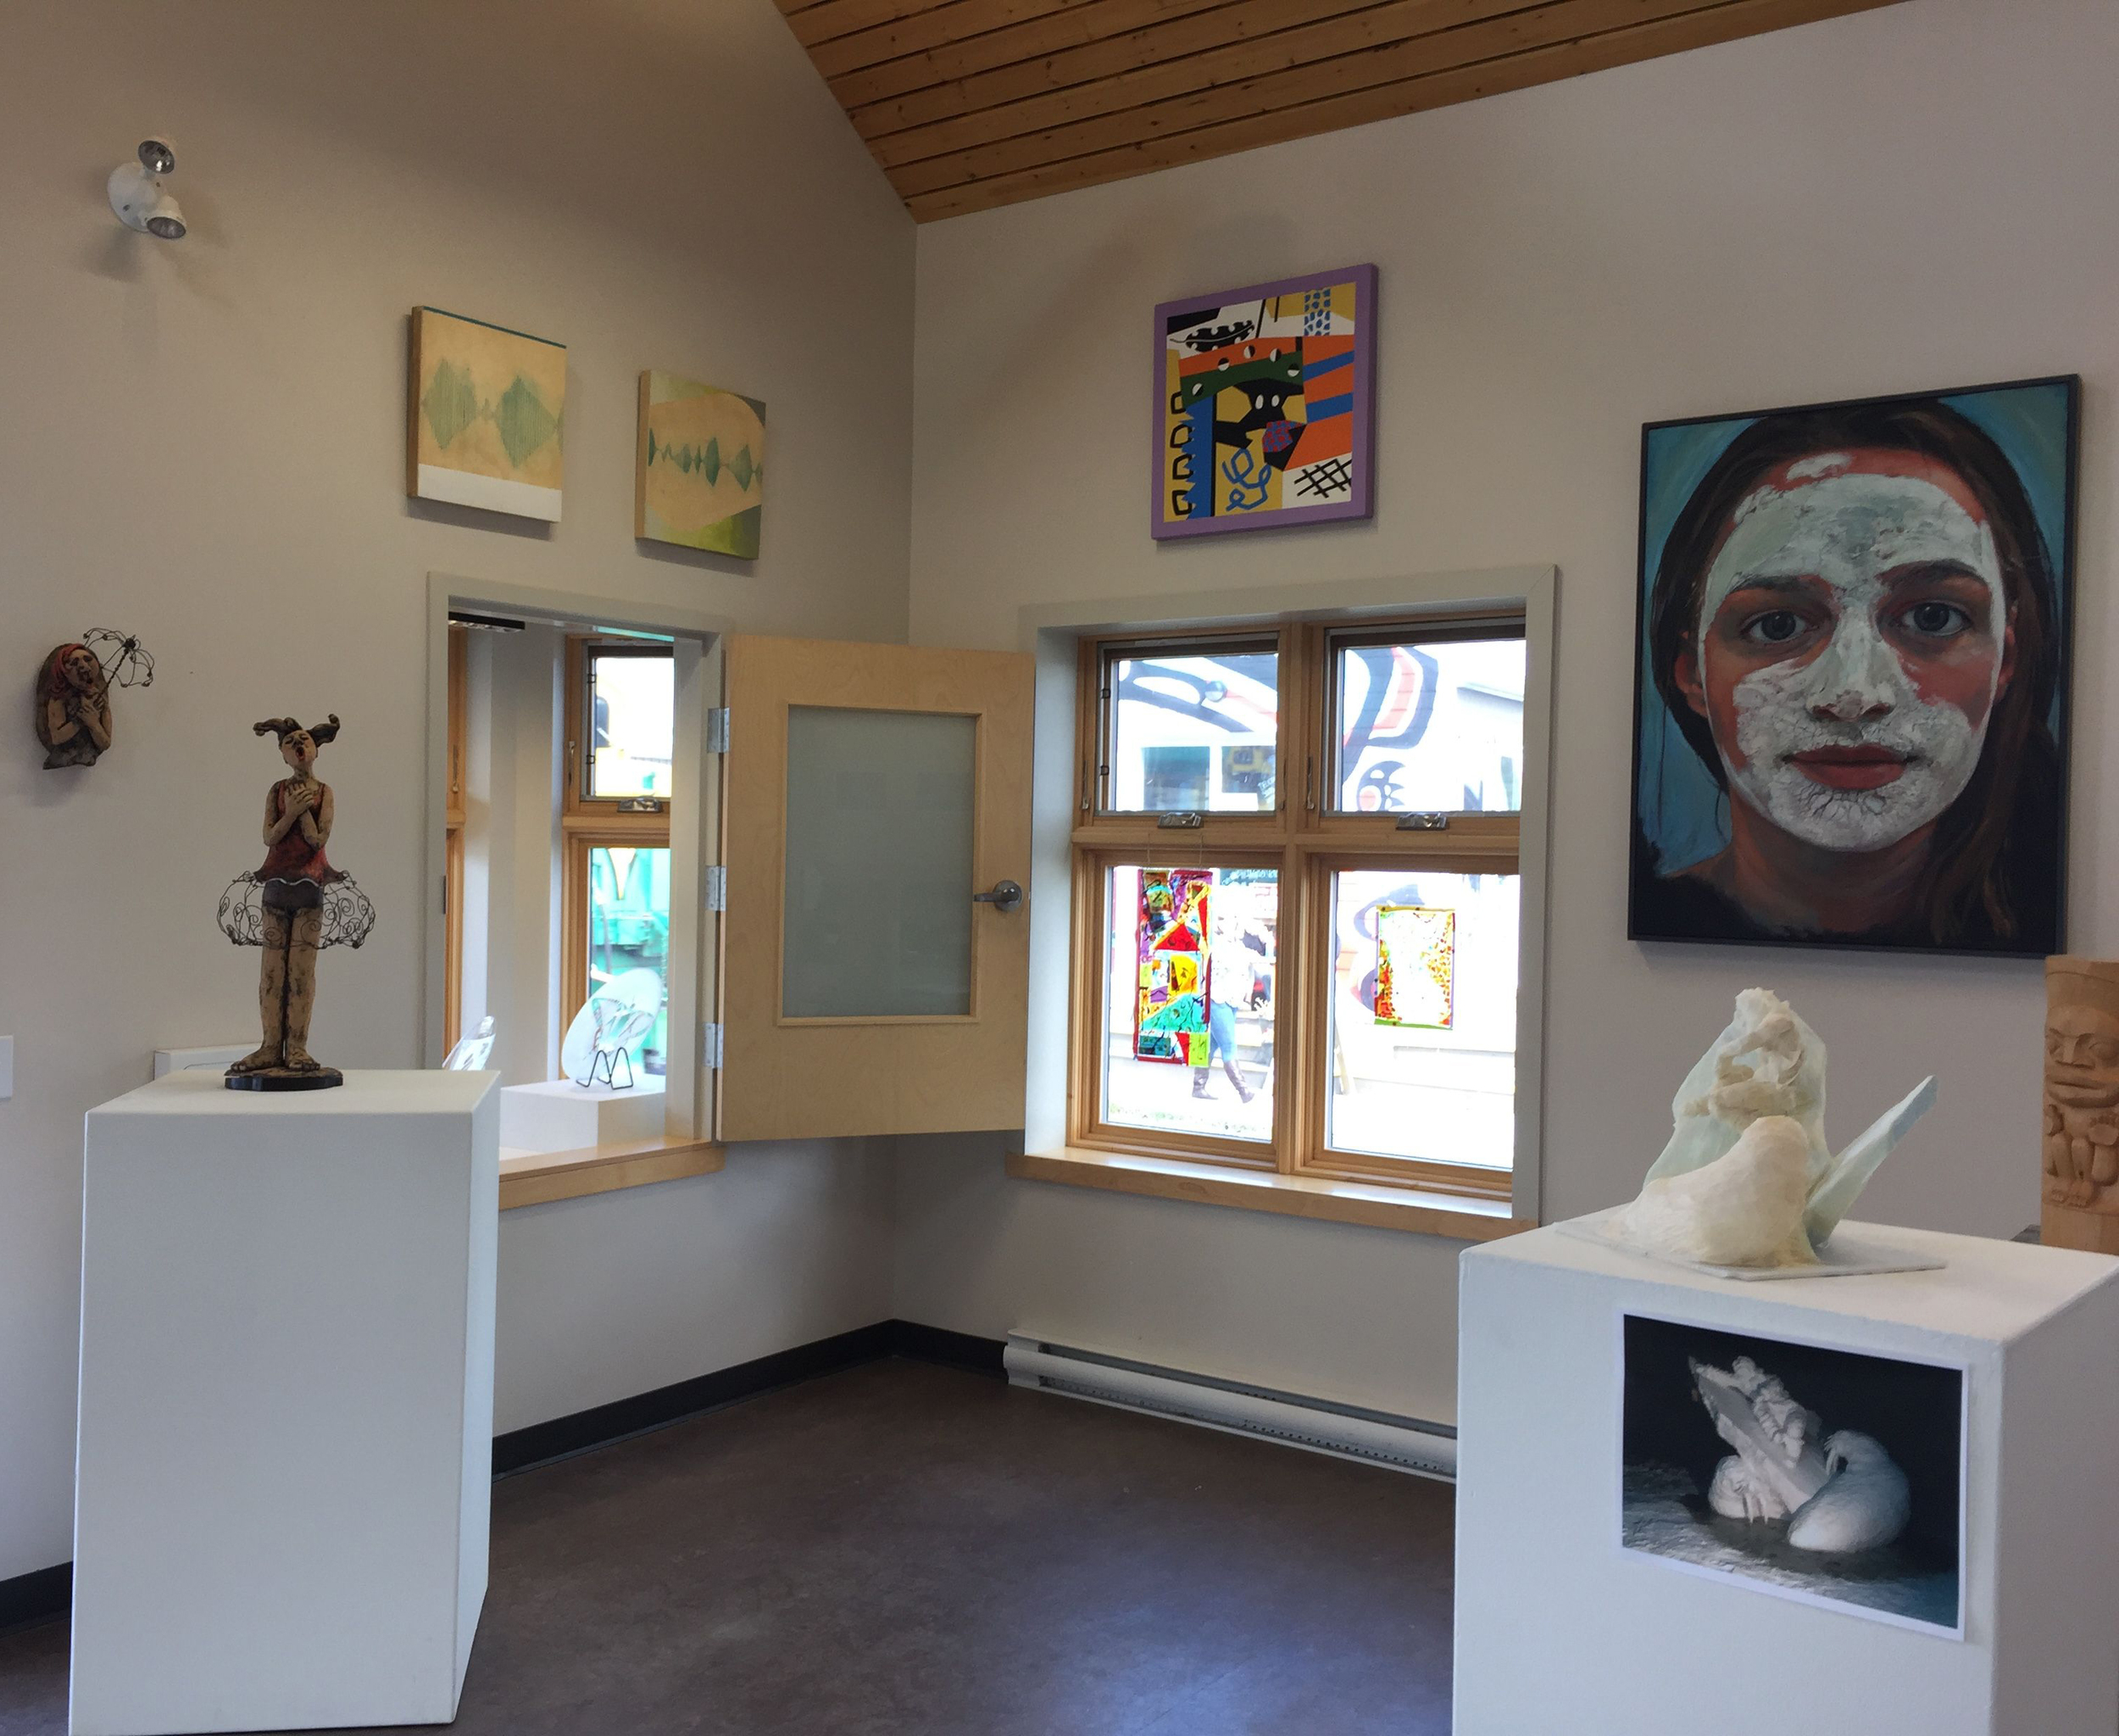 Left to right, works by Margreit Aasman, Barb Hinton (above) ,Keith Wolfe Smarch, Ken Thomas, Jeanine Baker, Suzanne Paleczny, Donald Watt (snow carving maquette) and Keith Wolfe Smarch.